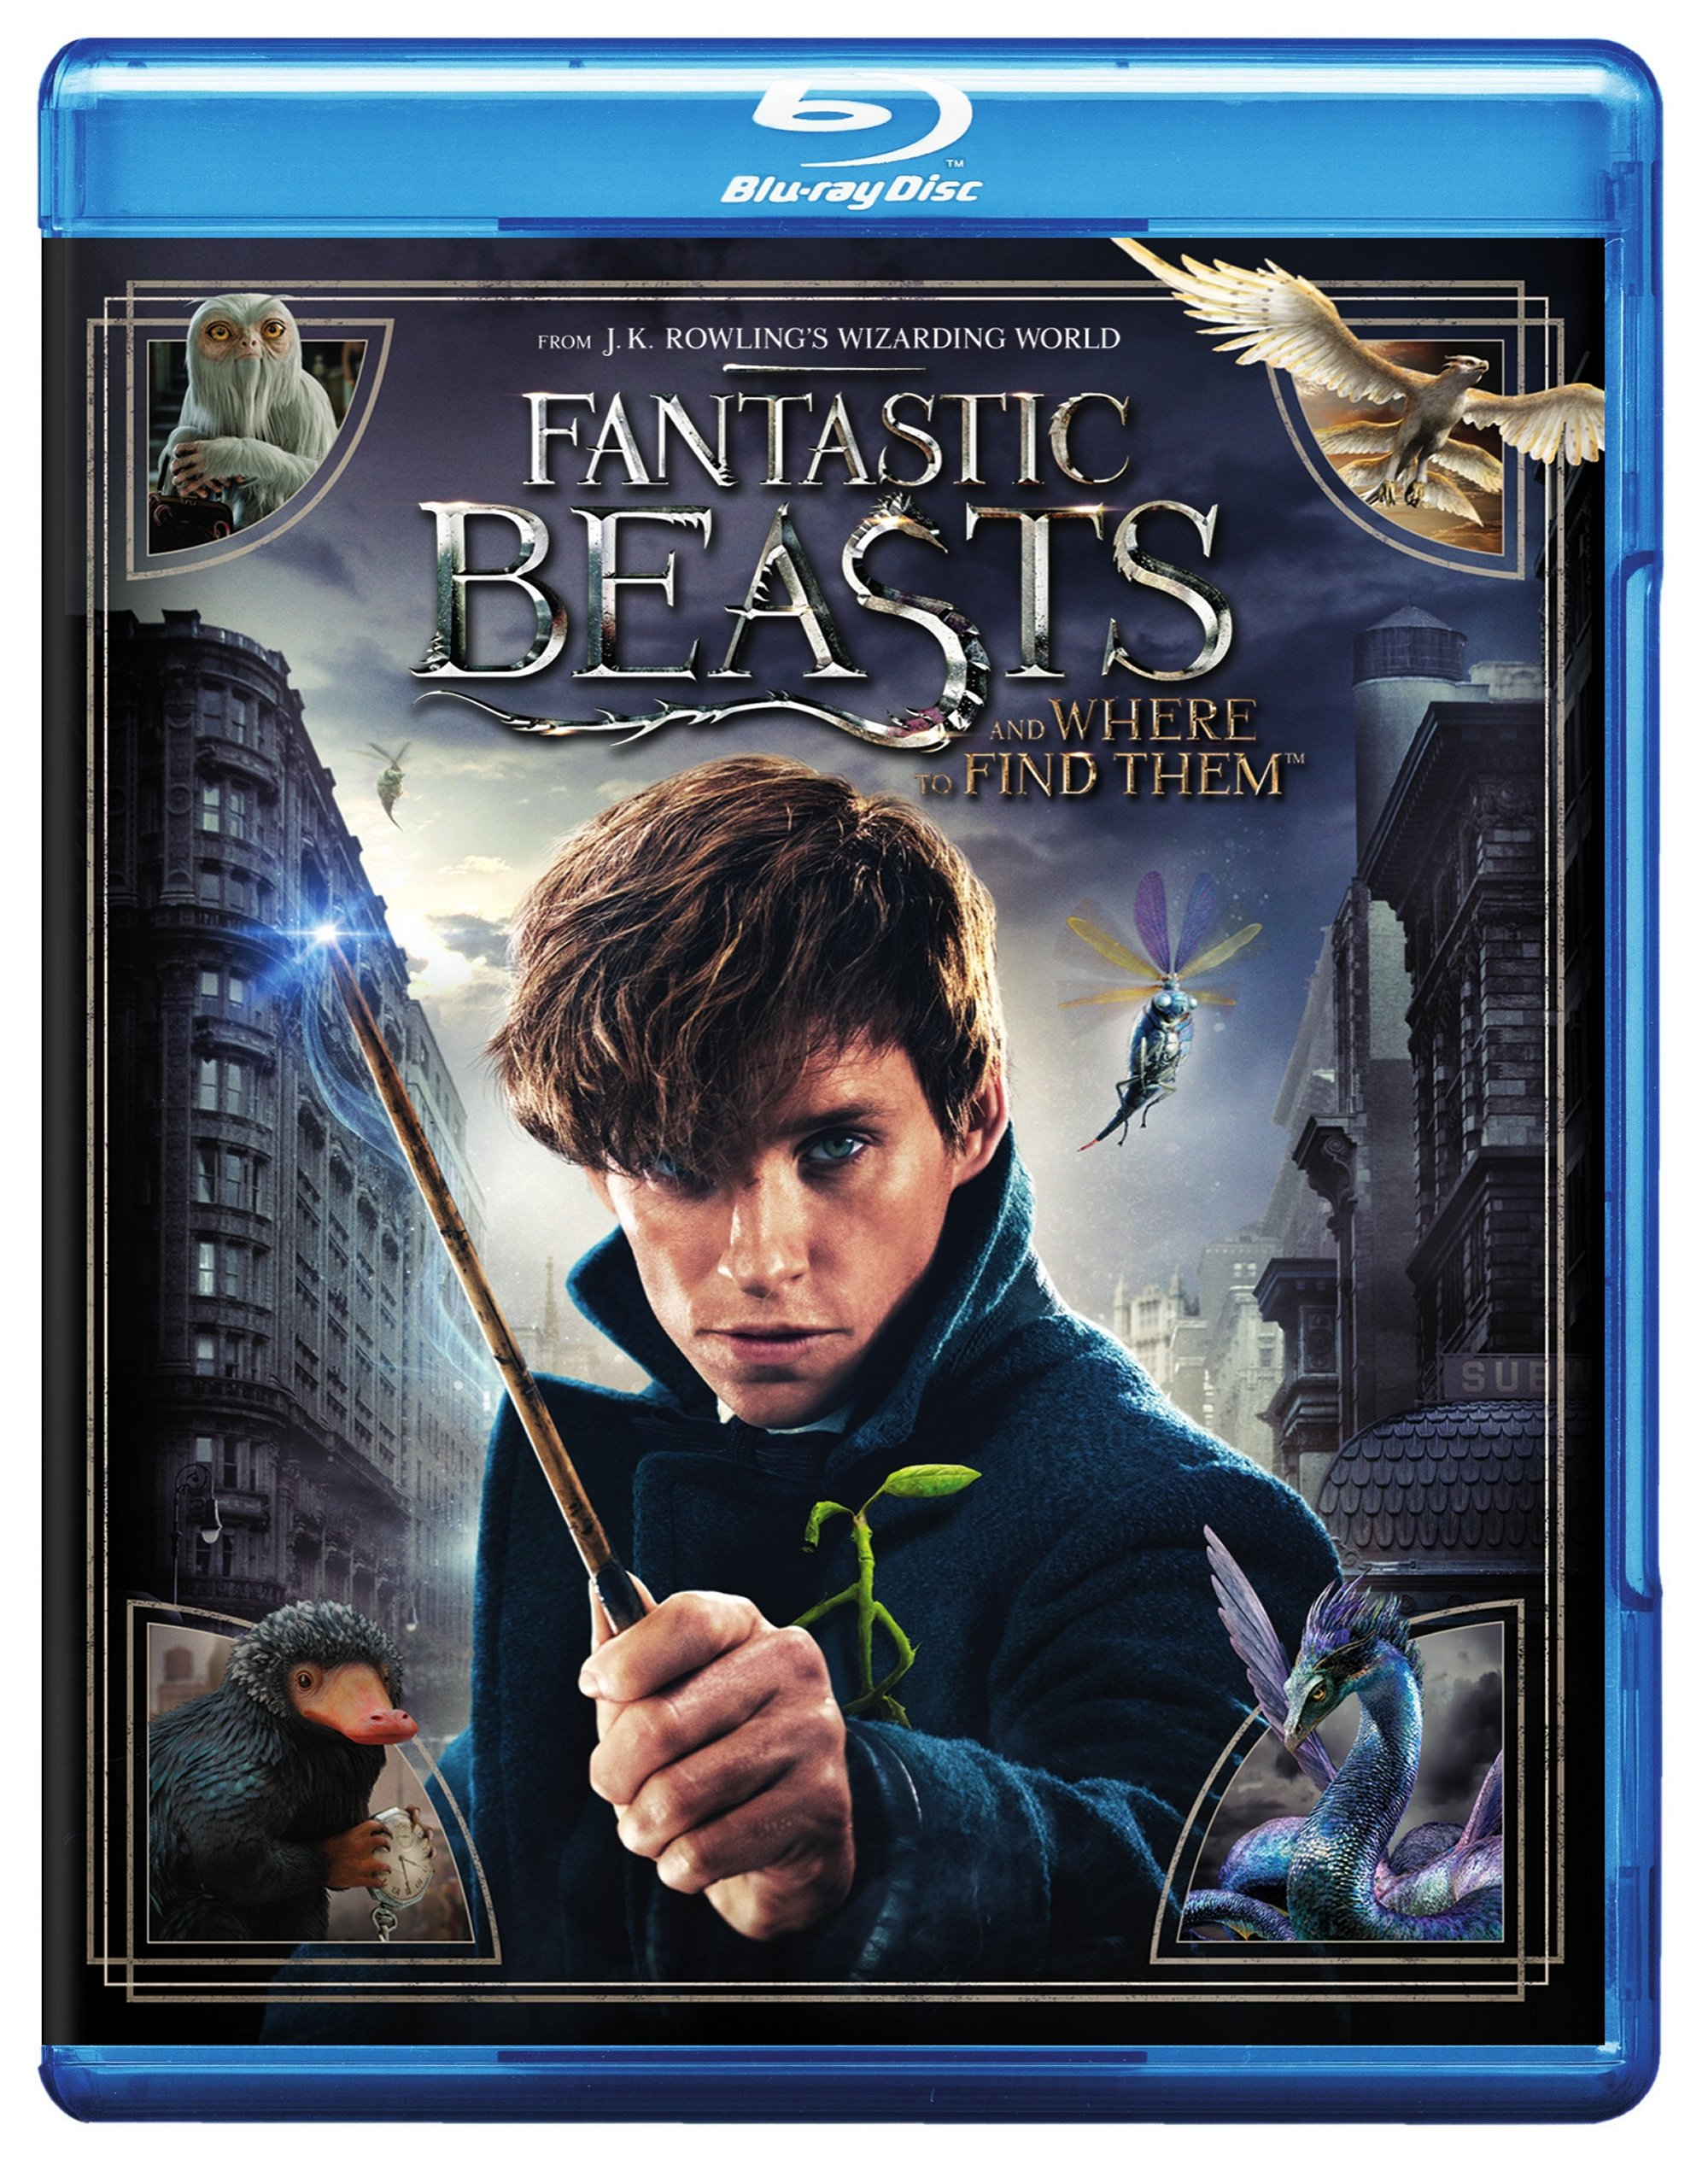 Fantastic Beasts And Where To Find Them (Blu-ray) by